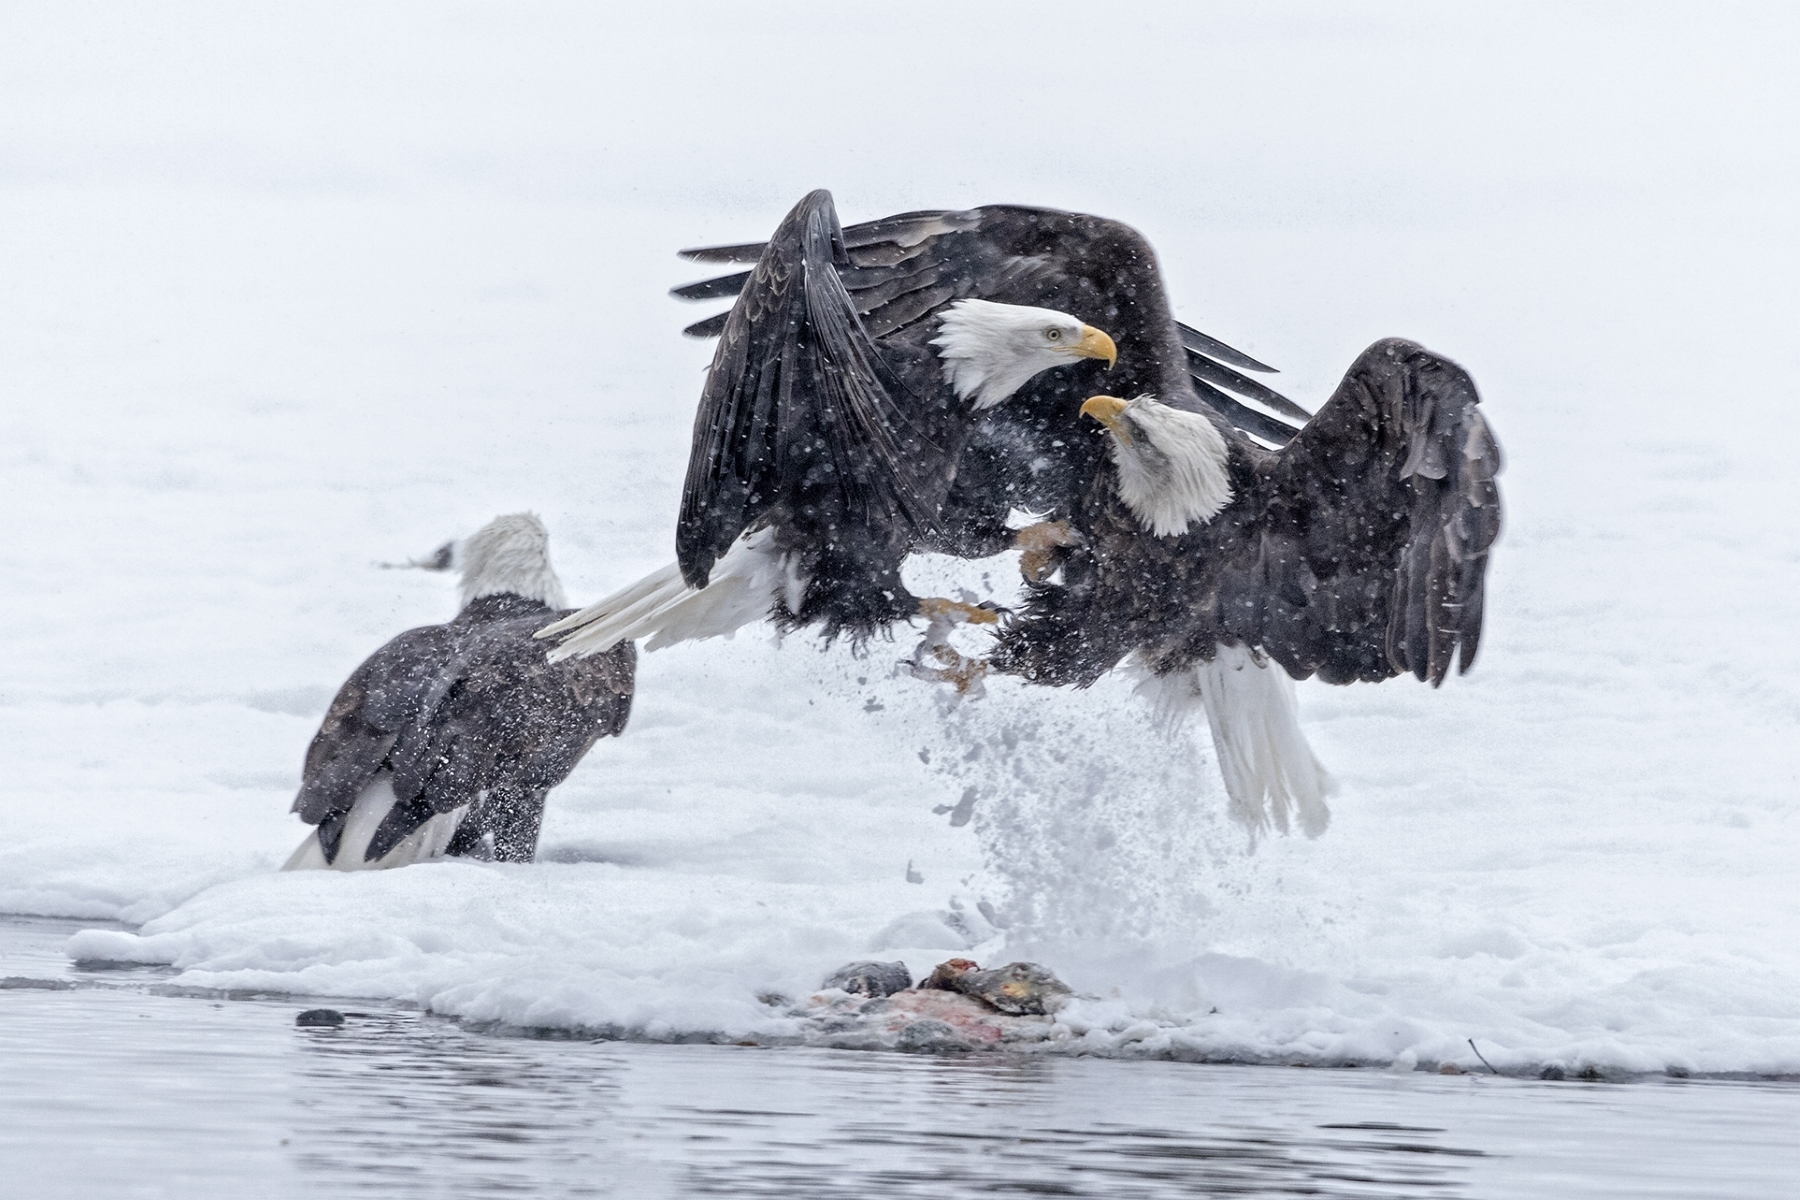 'In a snow storm on the Chilkat River, Alaska, two Bald Eagles fighting over a salmon' (NM Best in Show) by Clarence Luckett - LV